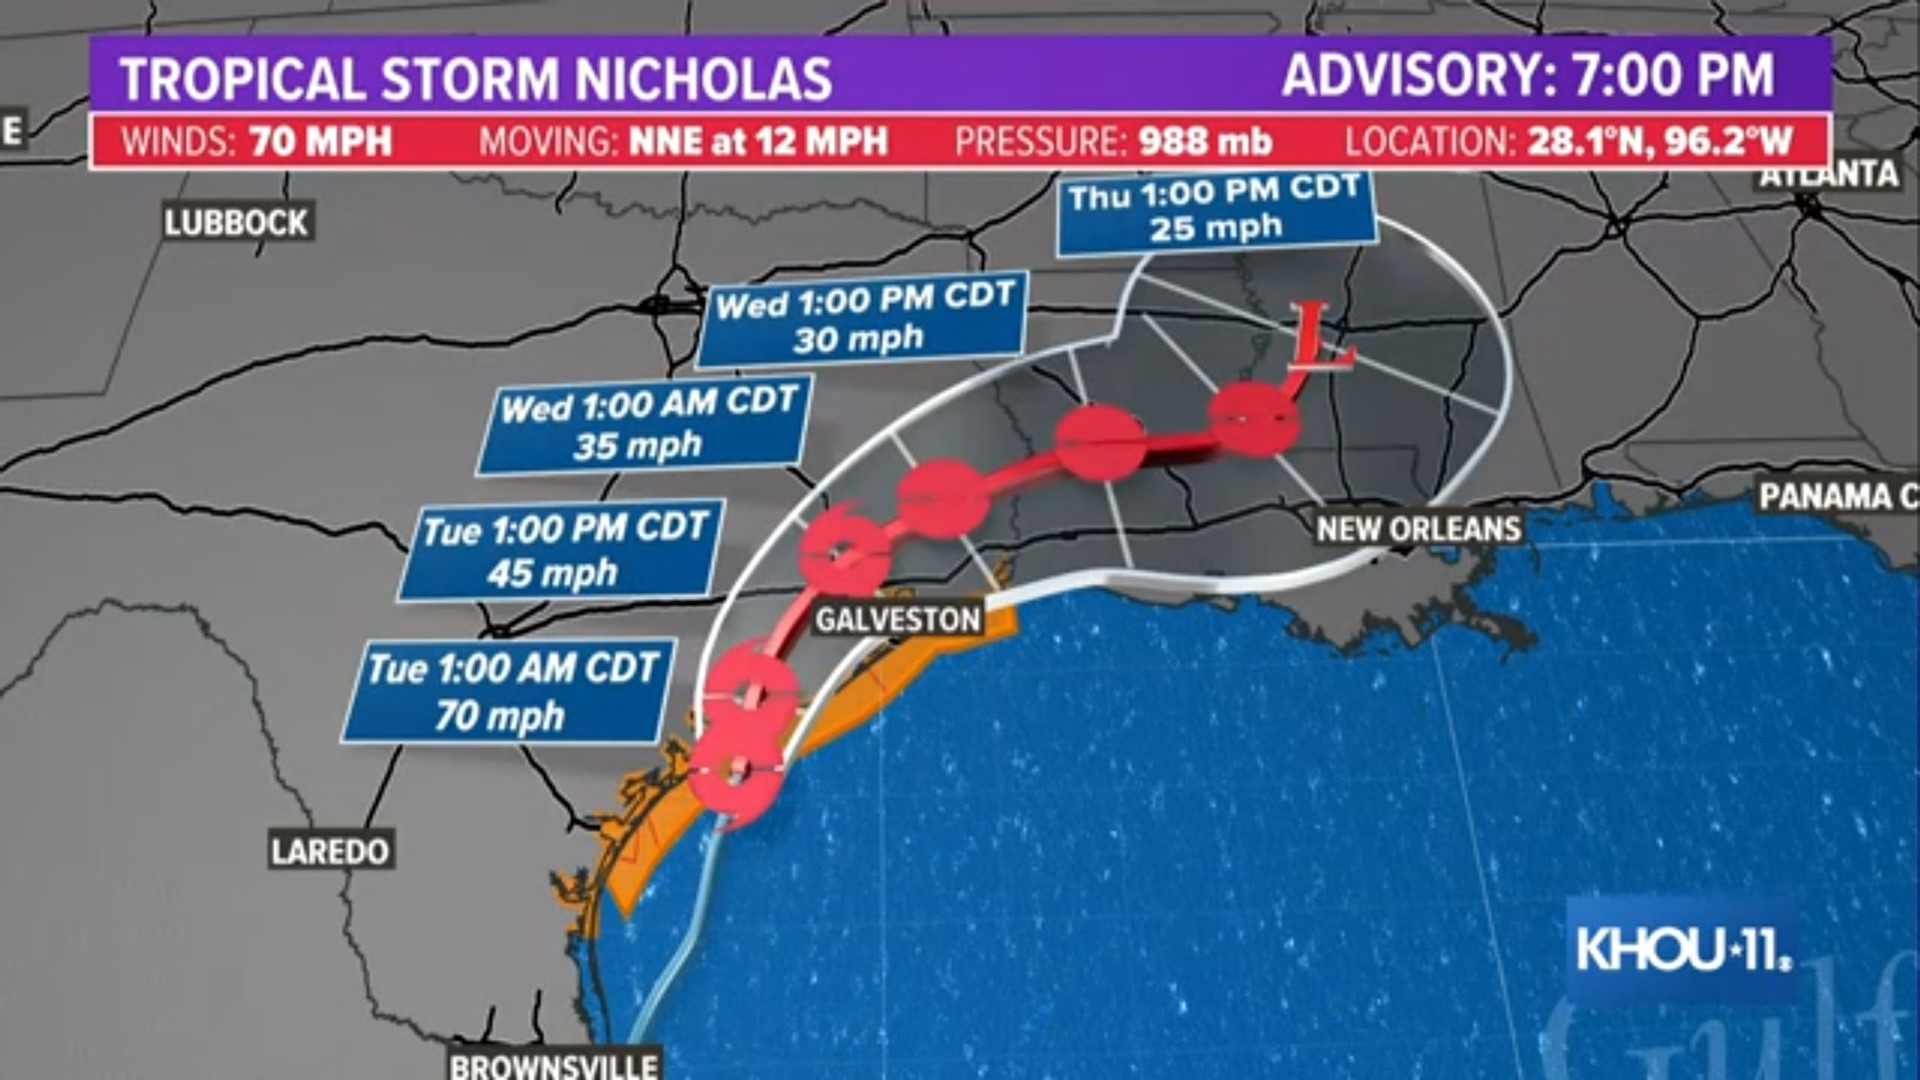 LIVE updates: Nicholas downgraded to tropical storm after making Texas landfall 6